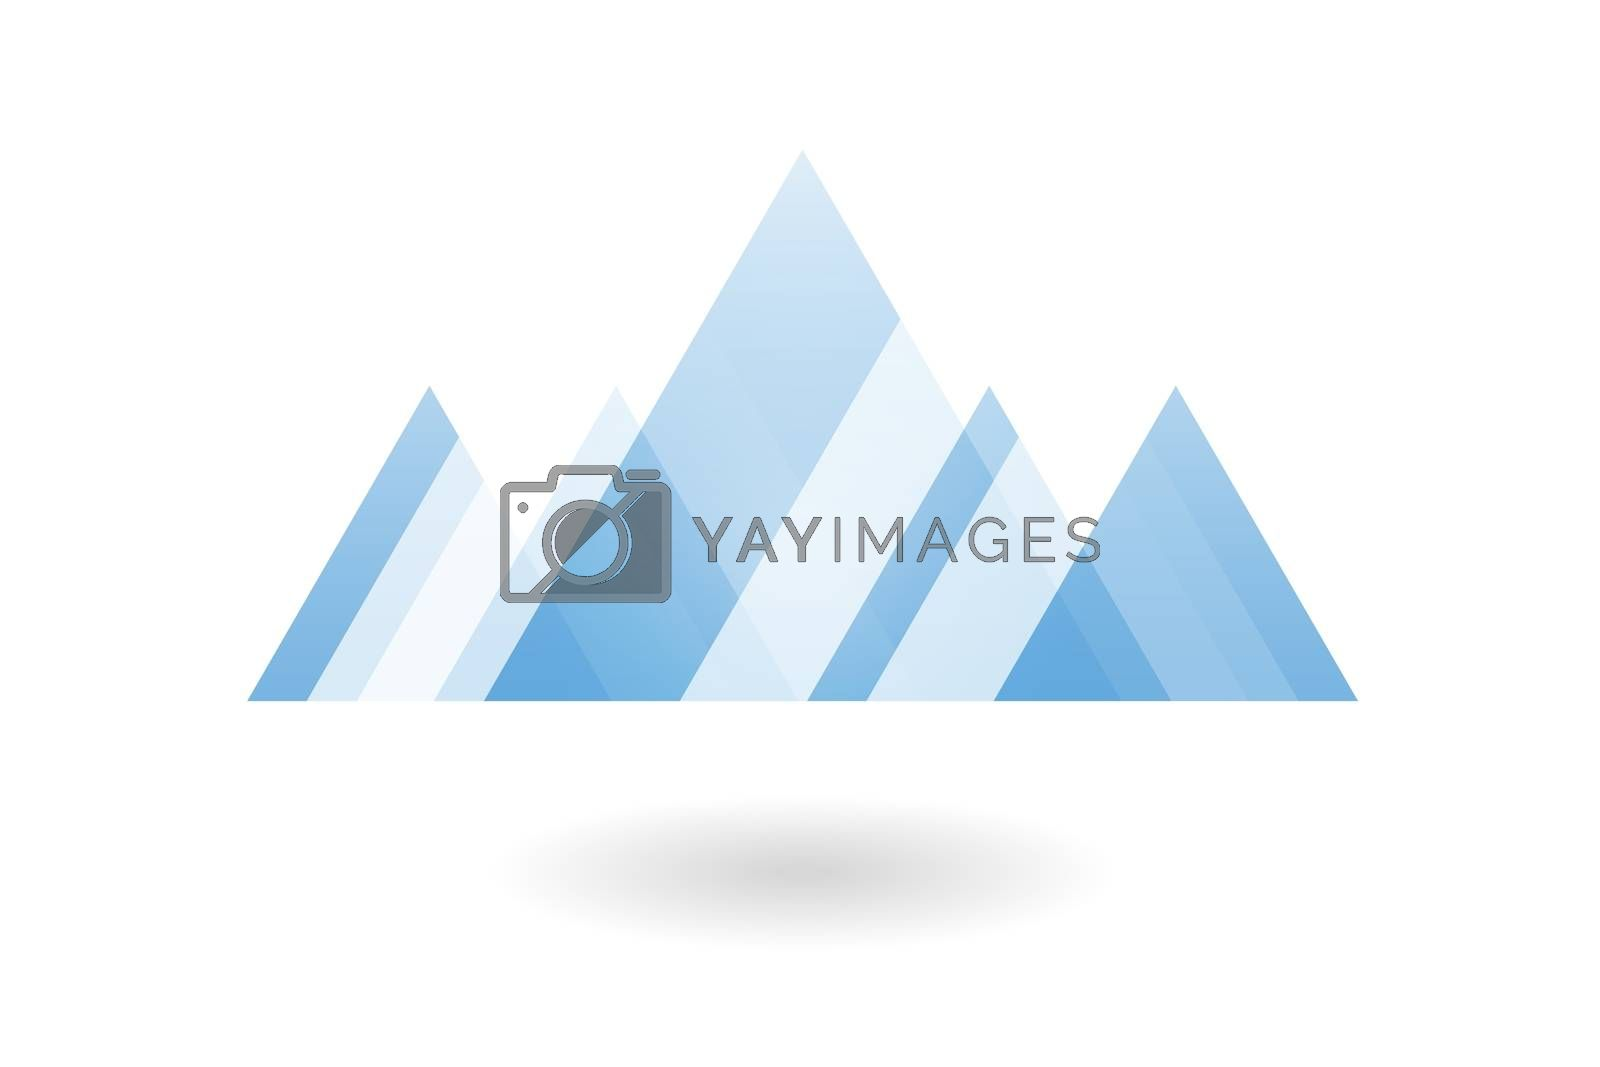 Royalty free image of Abstract geometric pattern, blue overlapping triangle mountain logo by mouu007